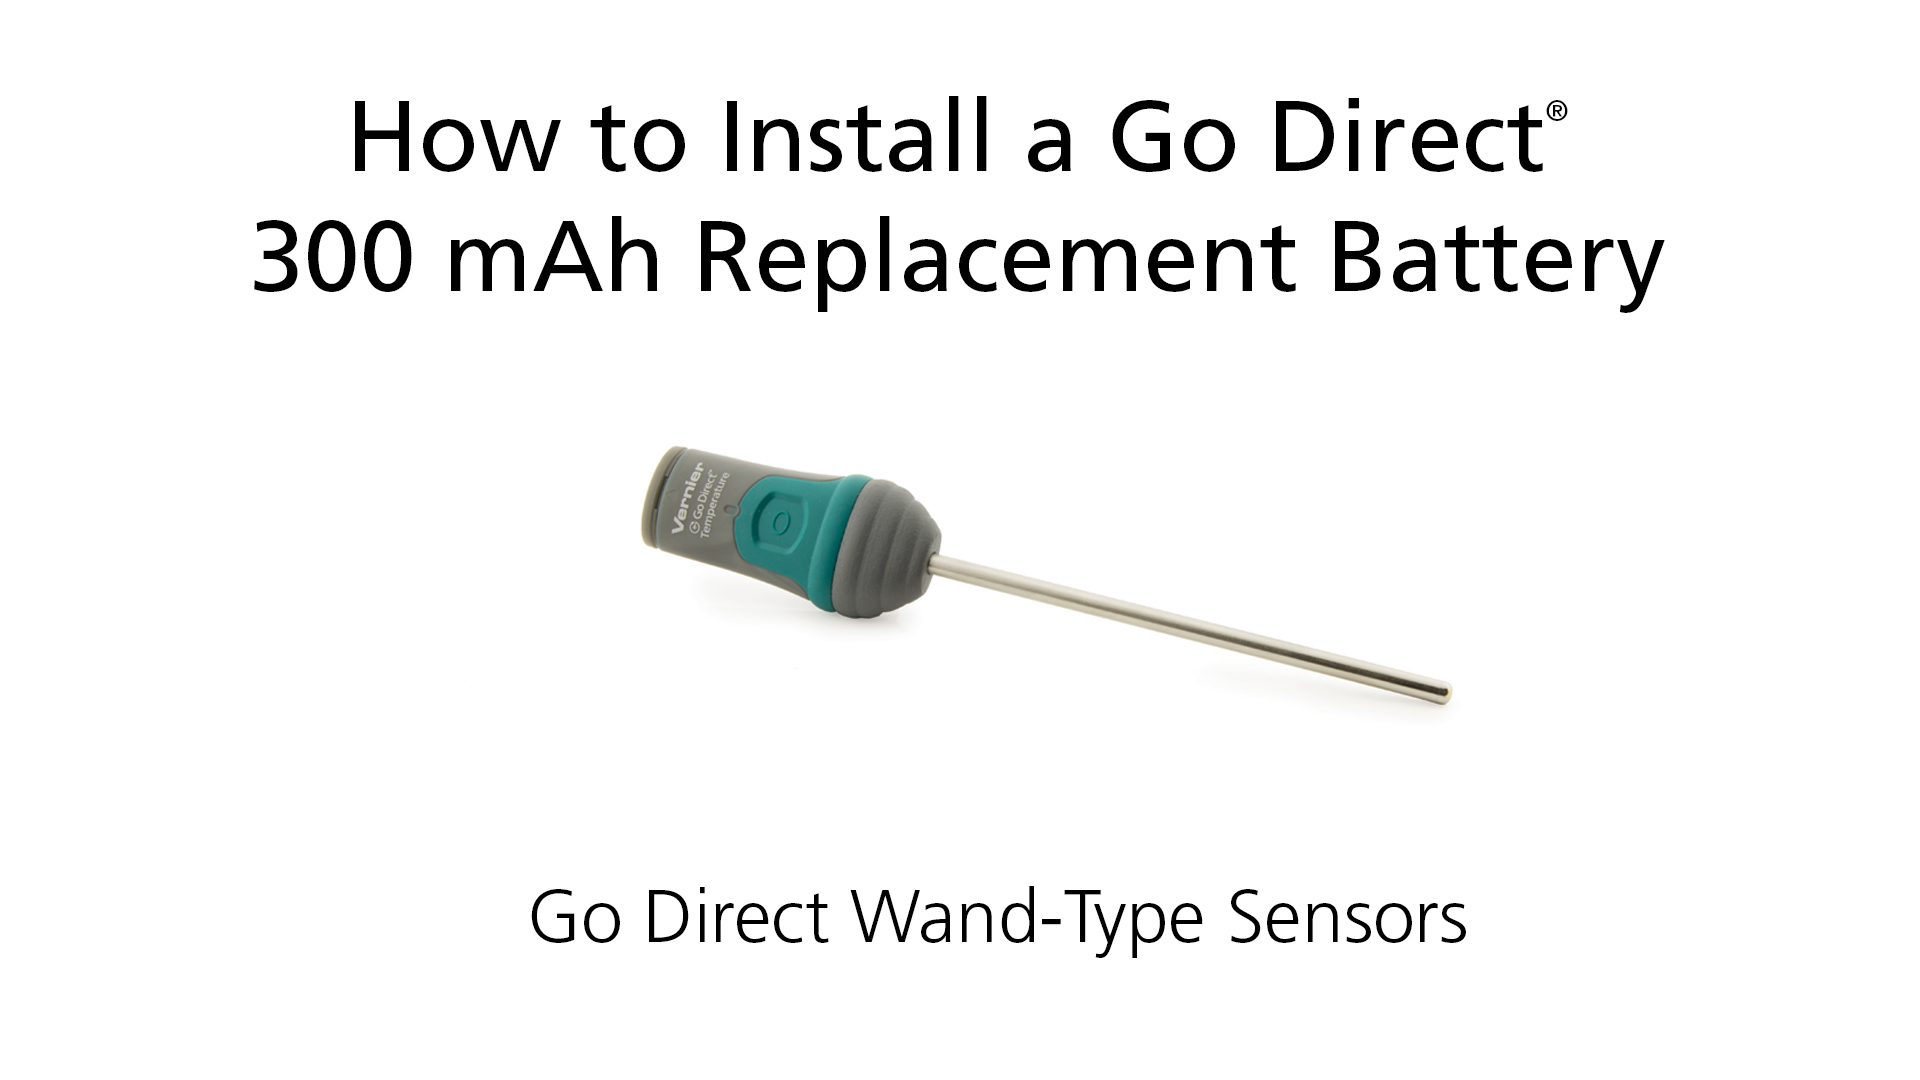 How to Install a Go Direct® 300 mAh Replacement Battery in Wand-Type Sensors